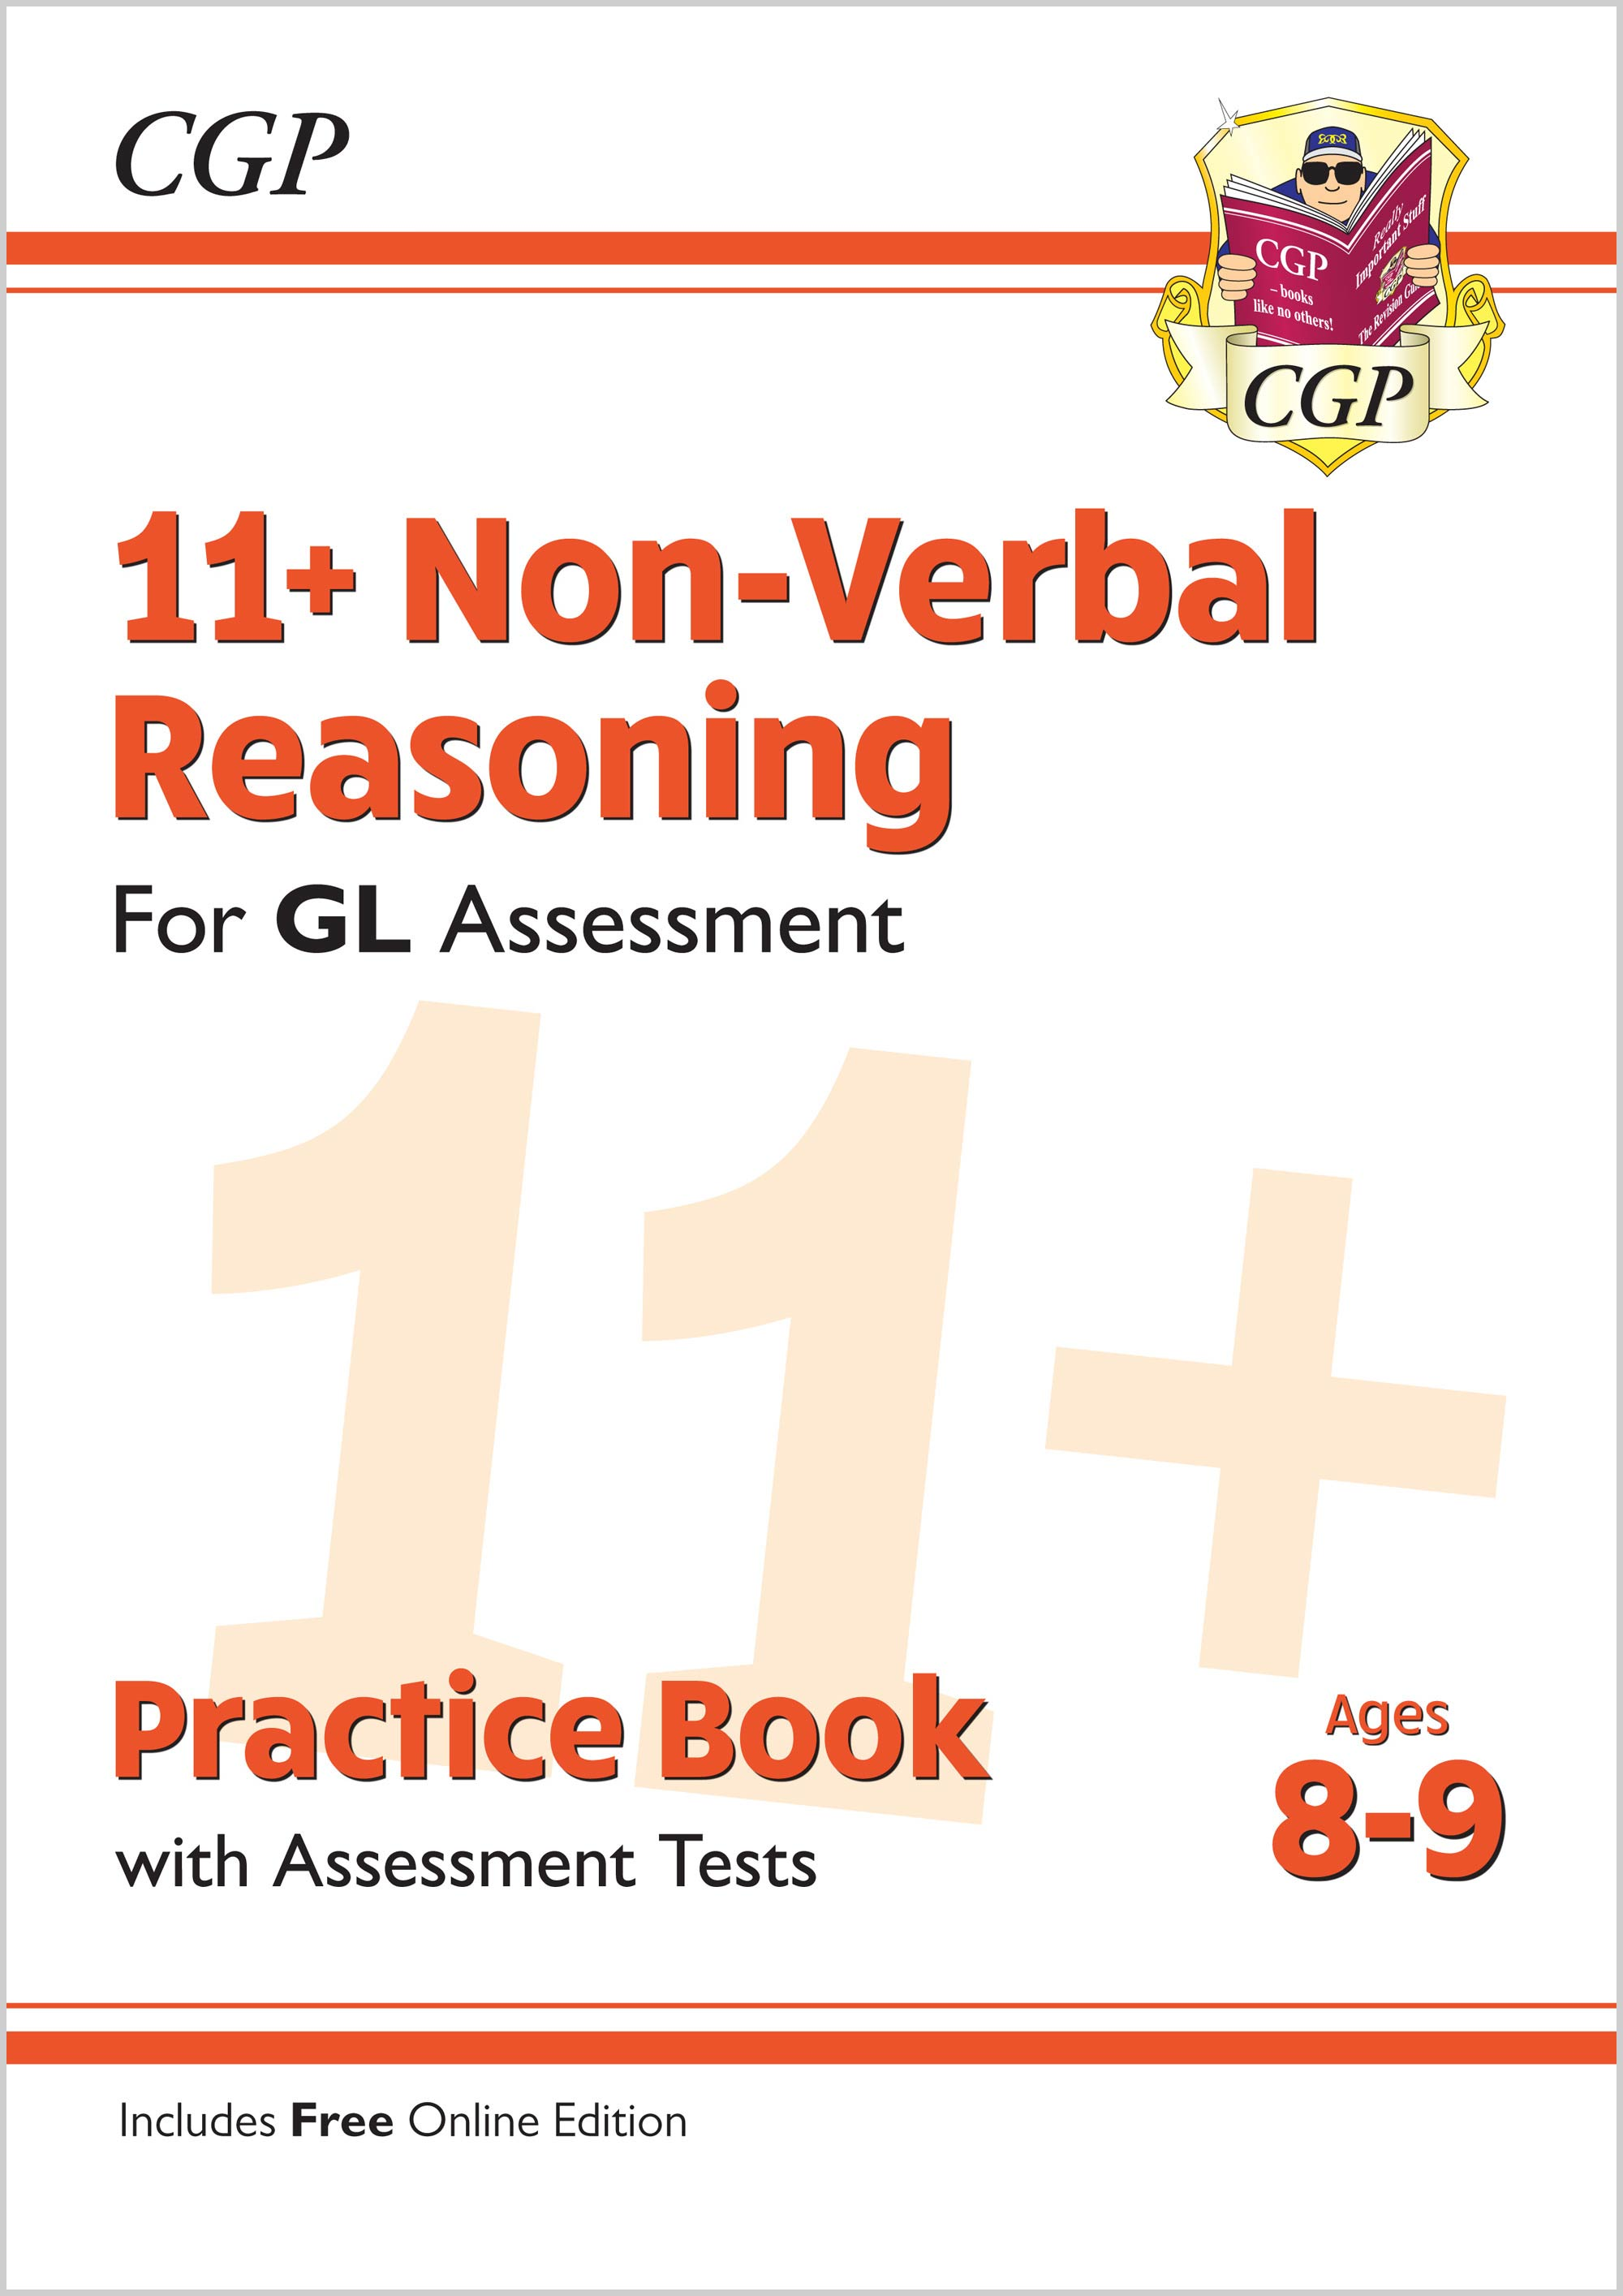 N4QE2 - New 11+ GL Non-Verbal Reasoning Practice Book & Assessment Tests - Ages 8-9 (with Online Edi